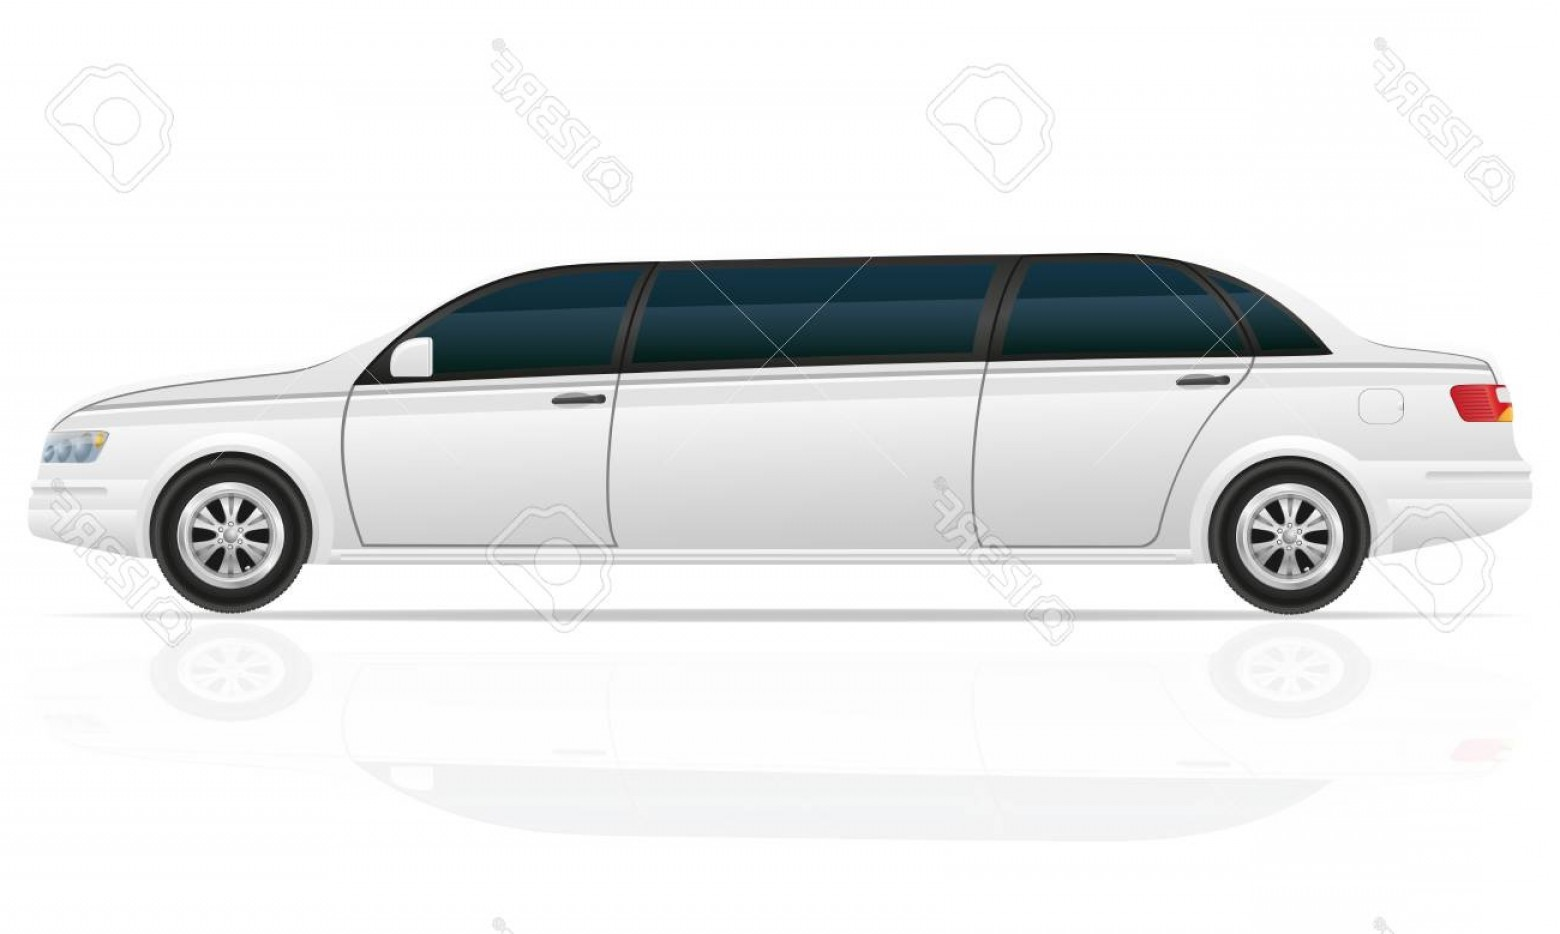 1560x934 Photostock Illustration Car Limousine Vector Illustration Isolated